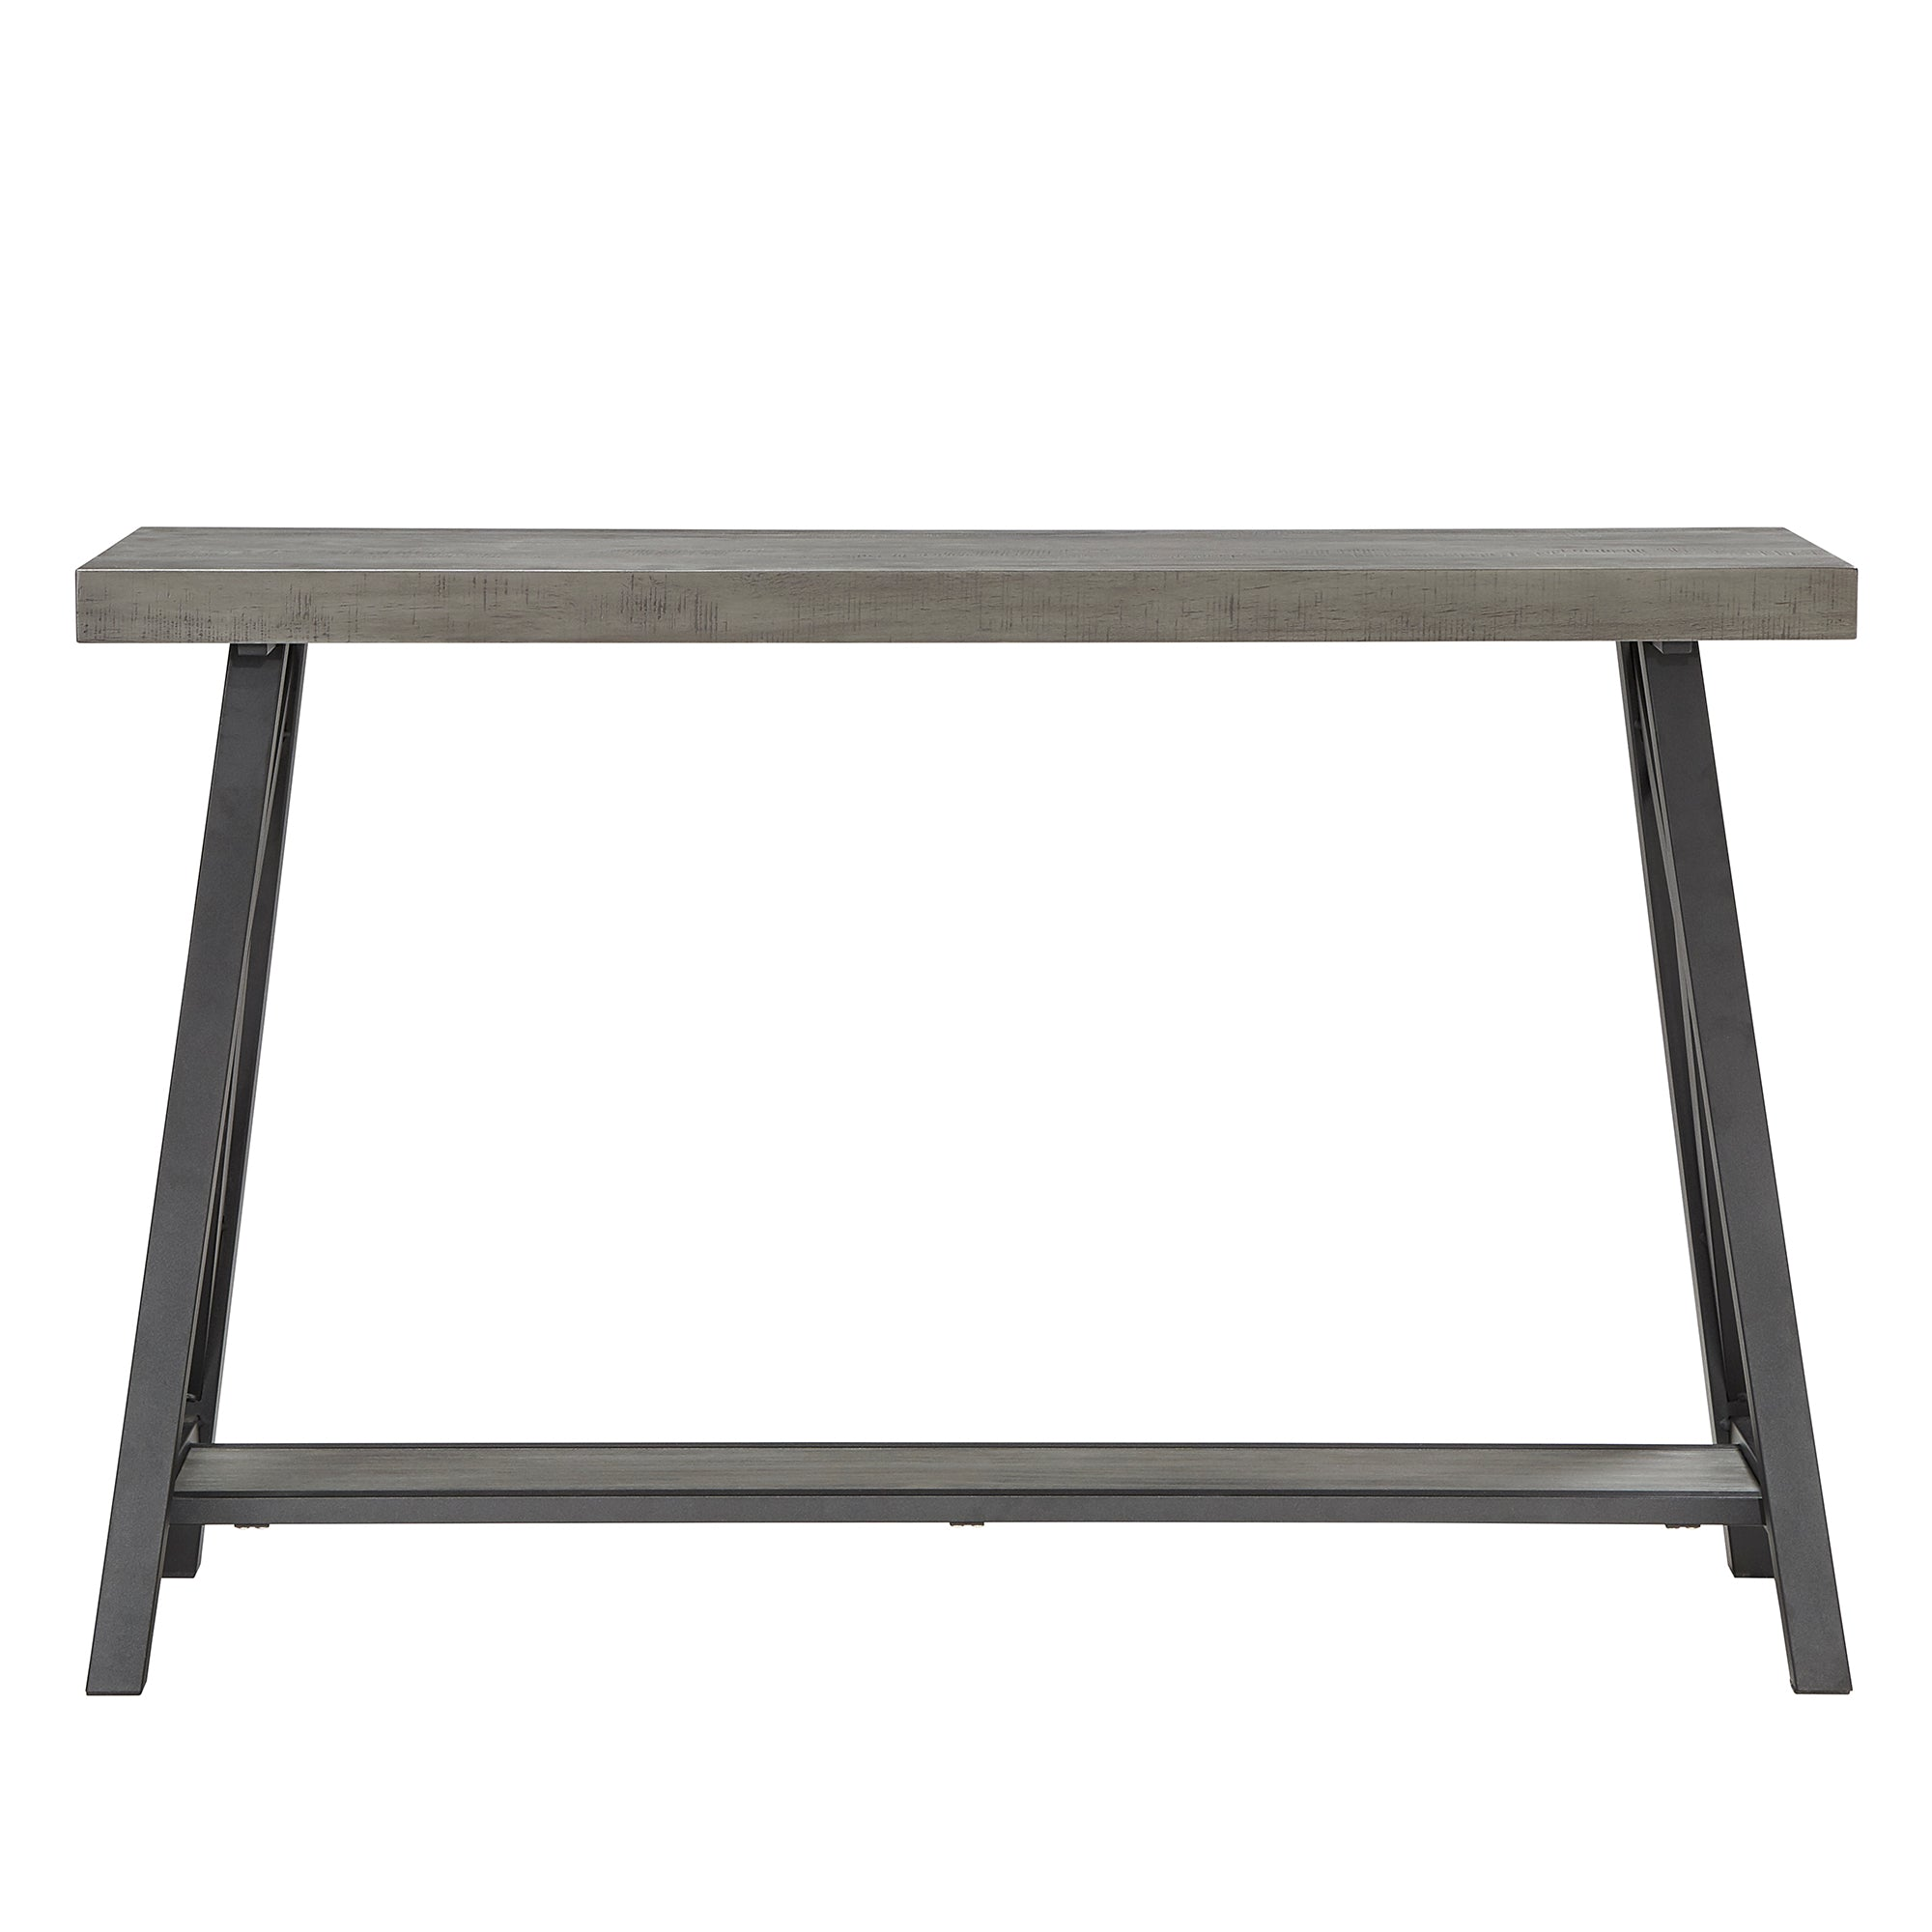 Sofa Table with Shelf